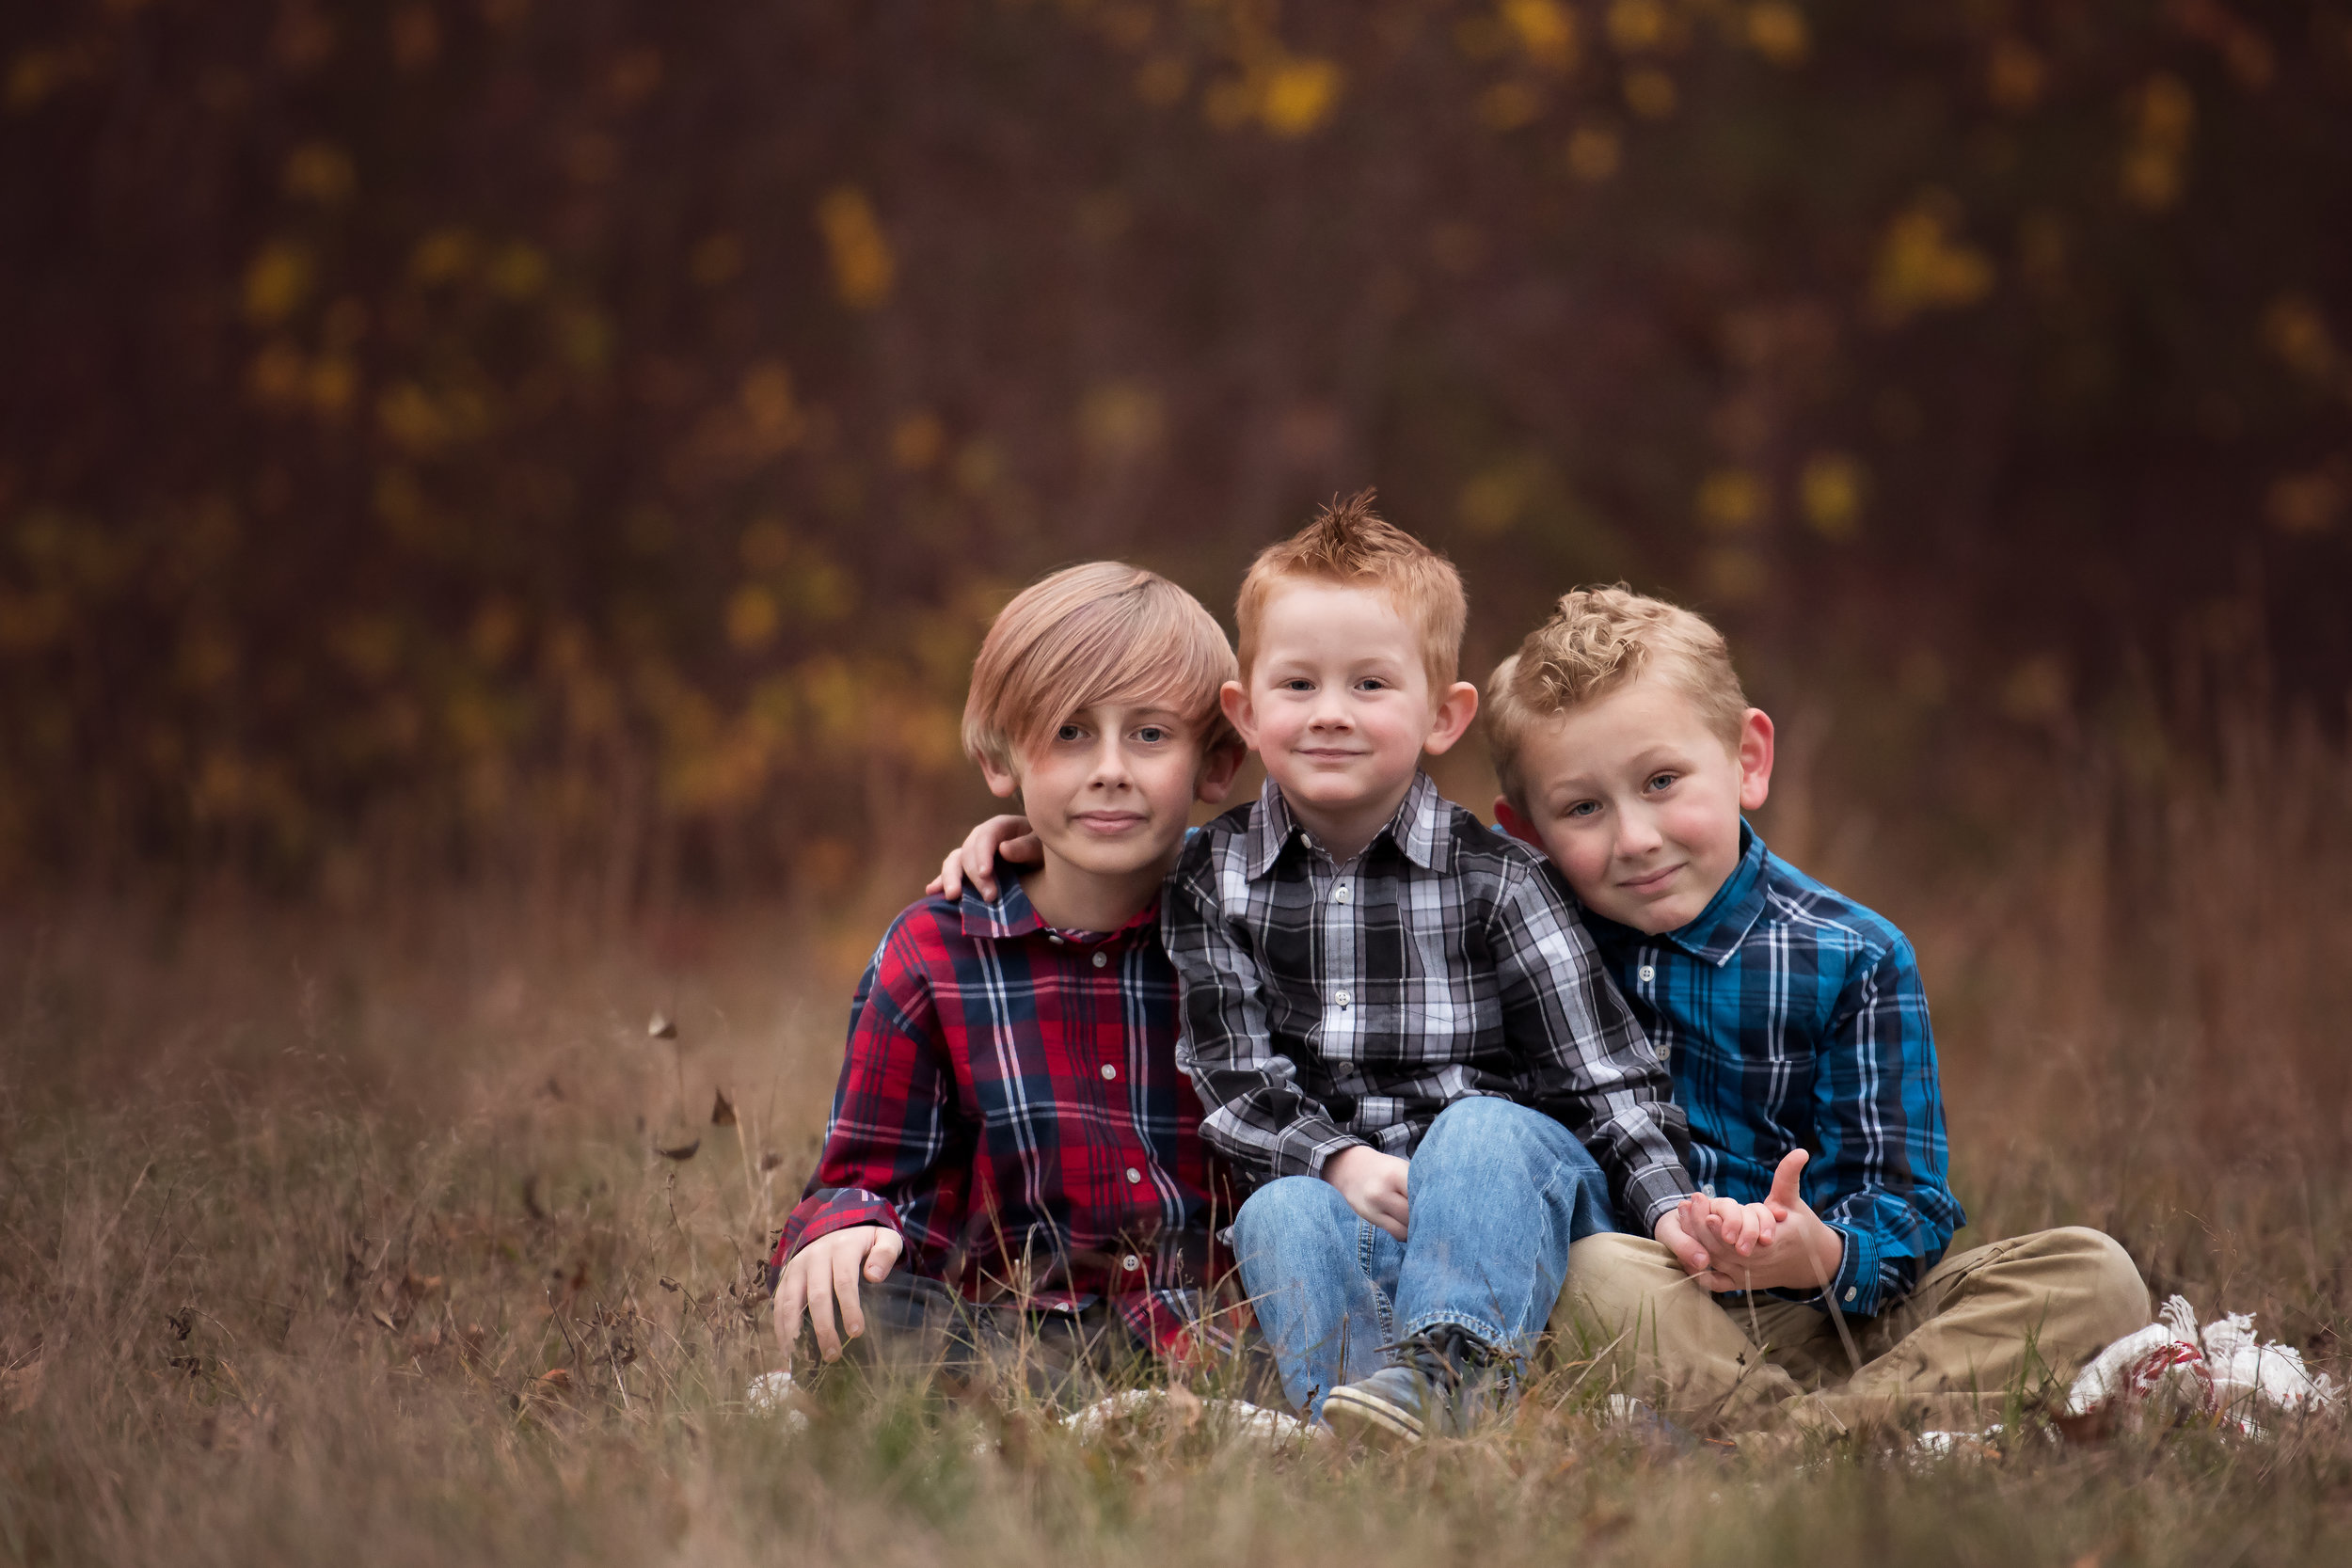 Three Brothers in Plaid in a Field